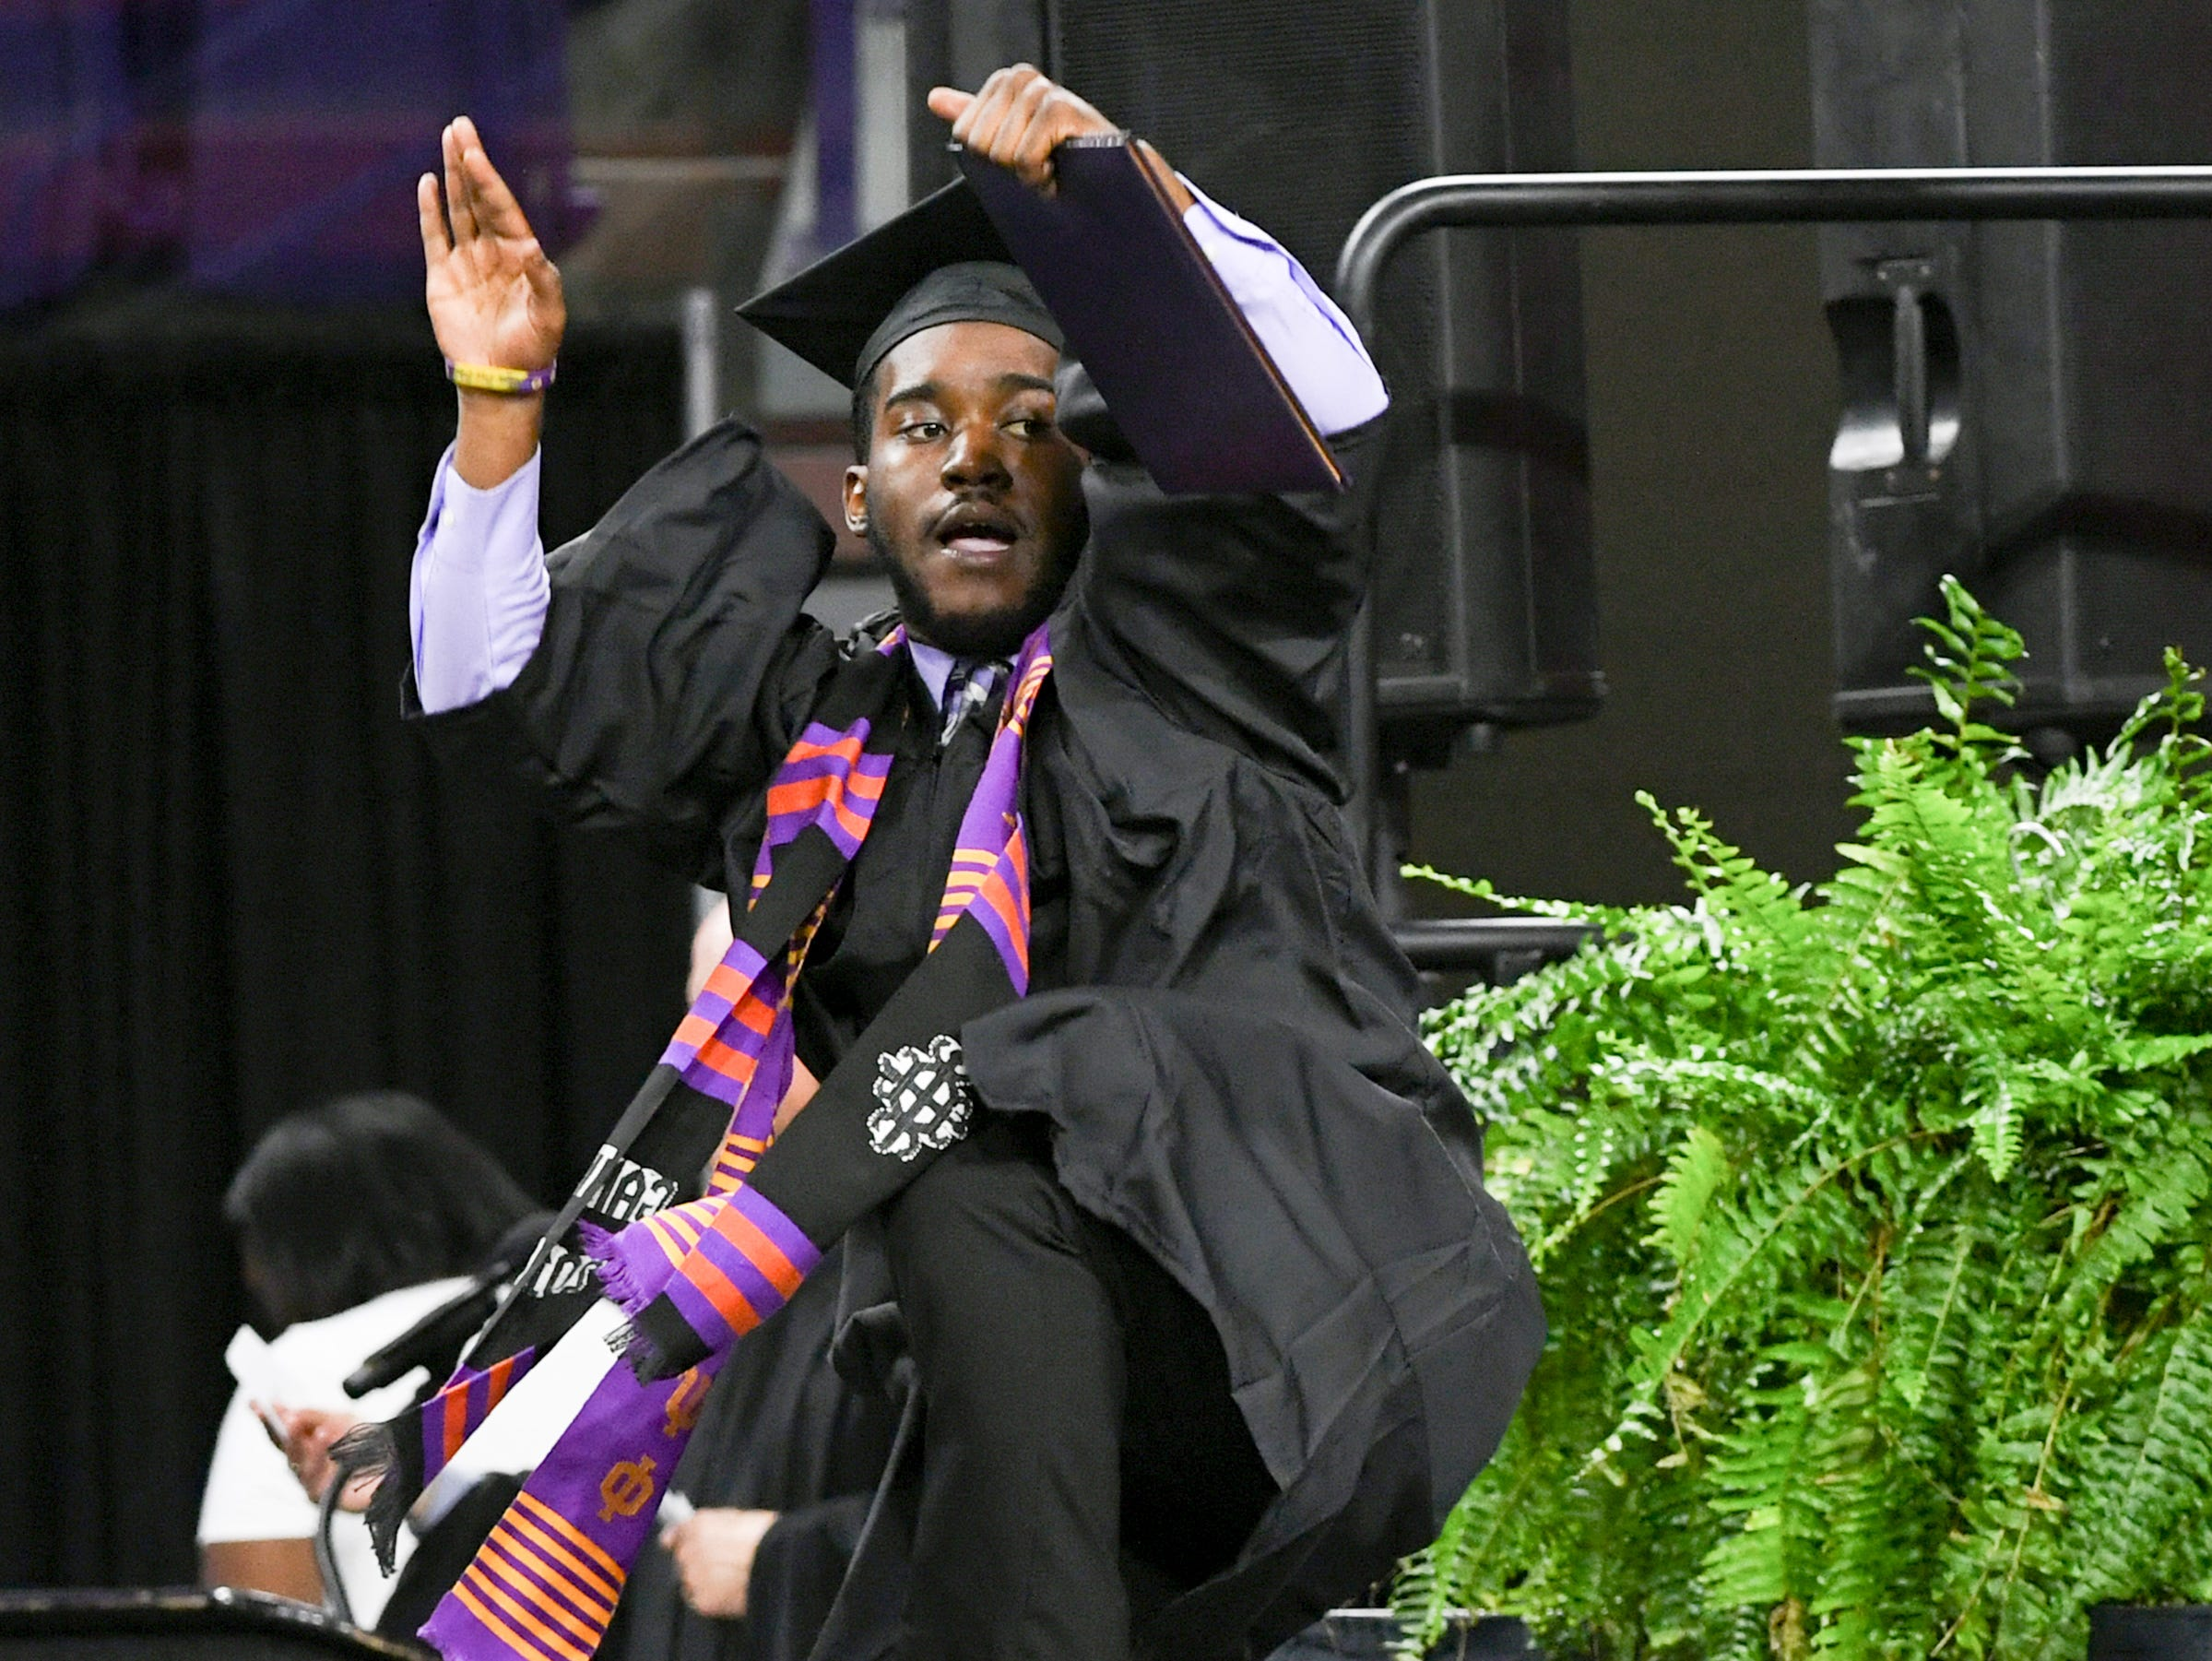 Richard Neely reacts after getting his diploma during Clemson University commencement ceremonies in Littlejohn Coliseum in Clemson Friday, May 10, 2019.